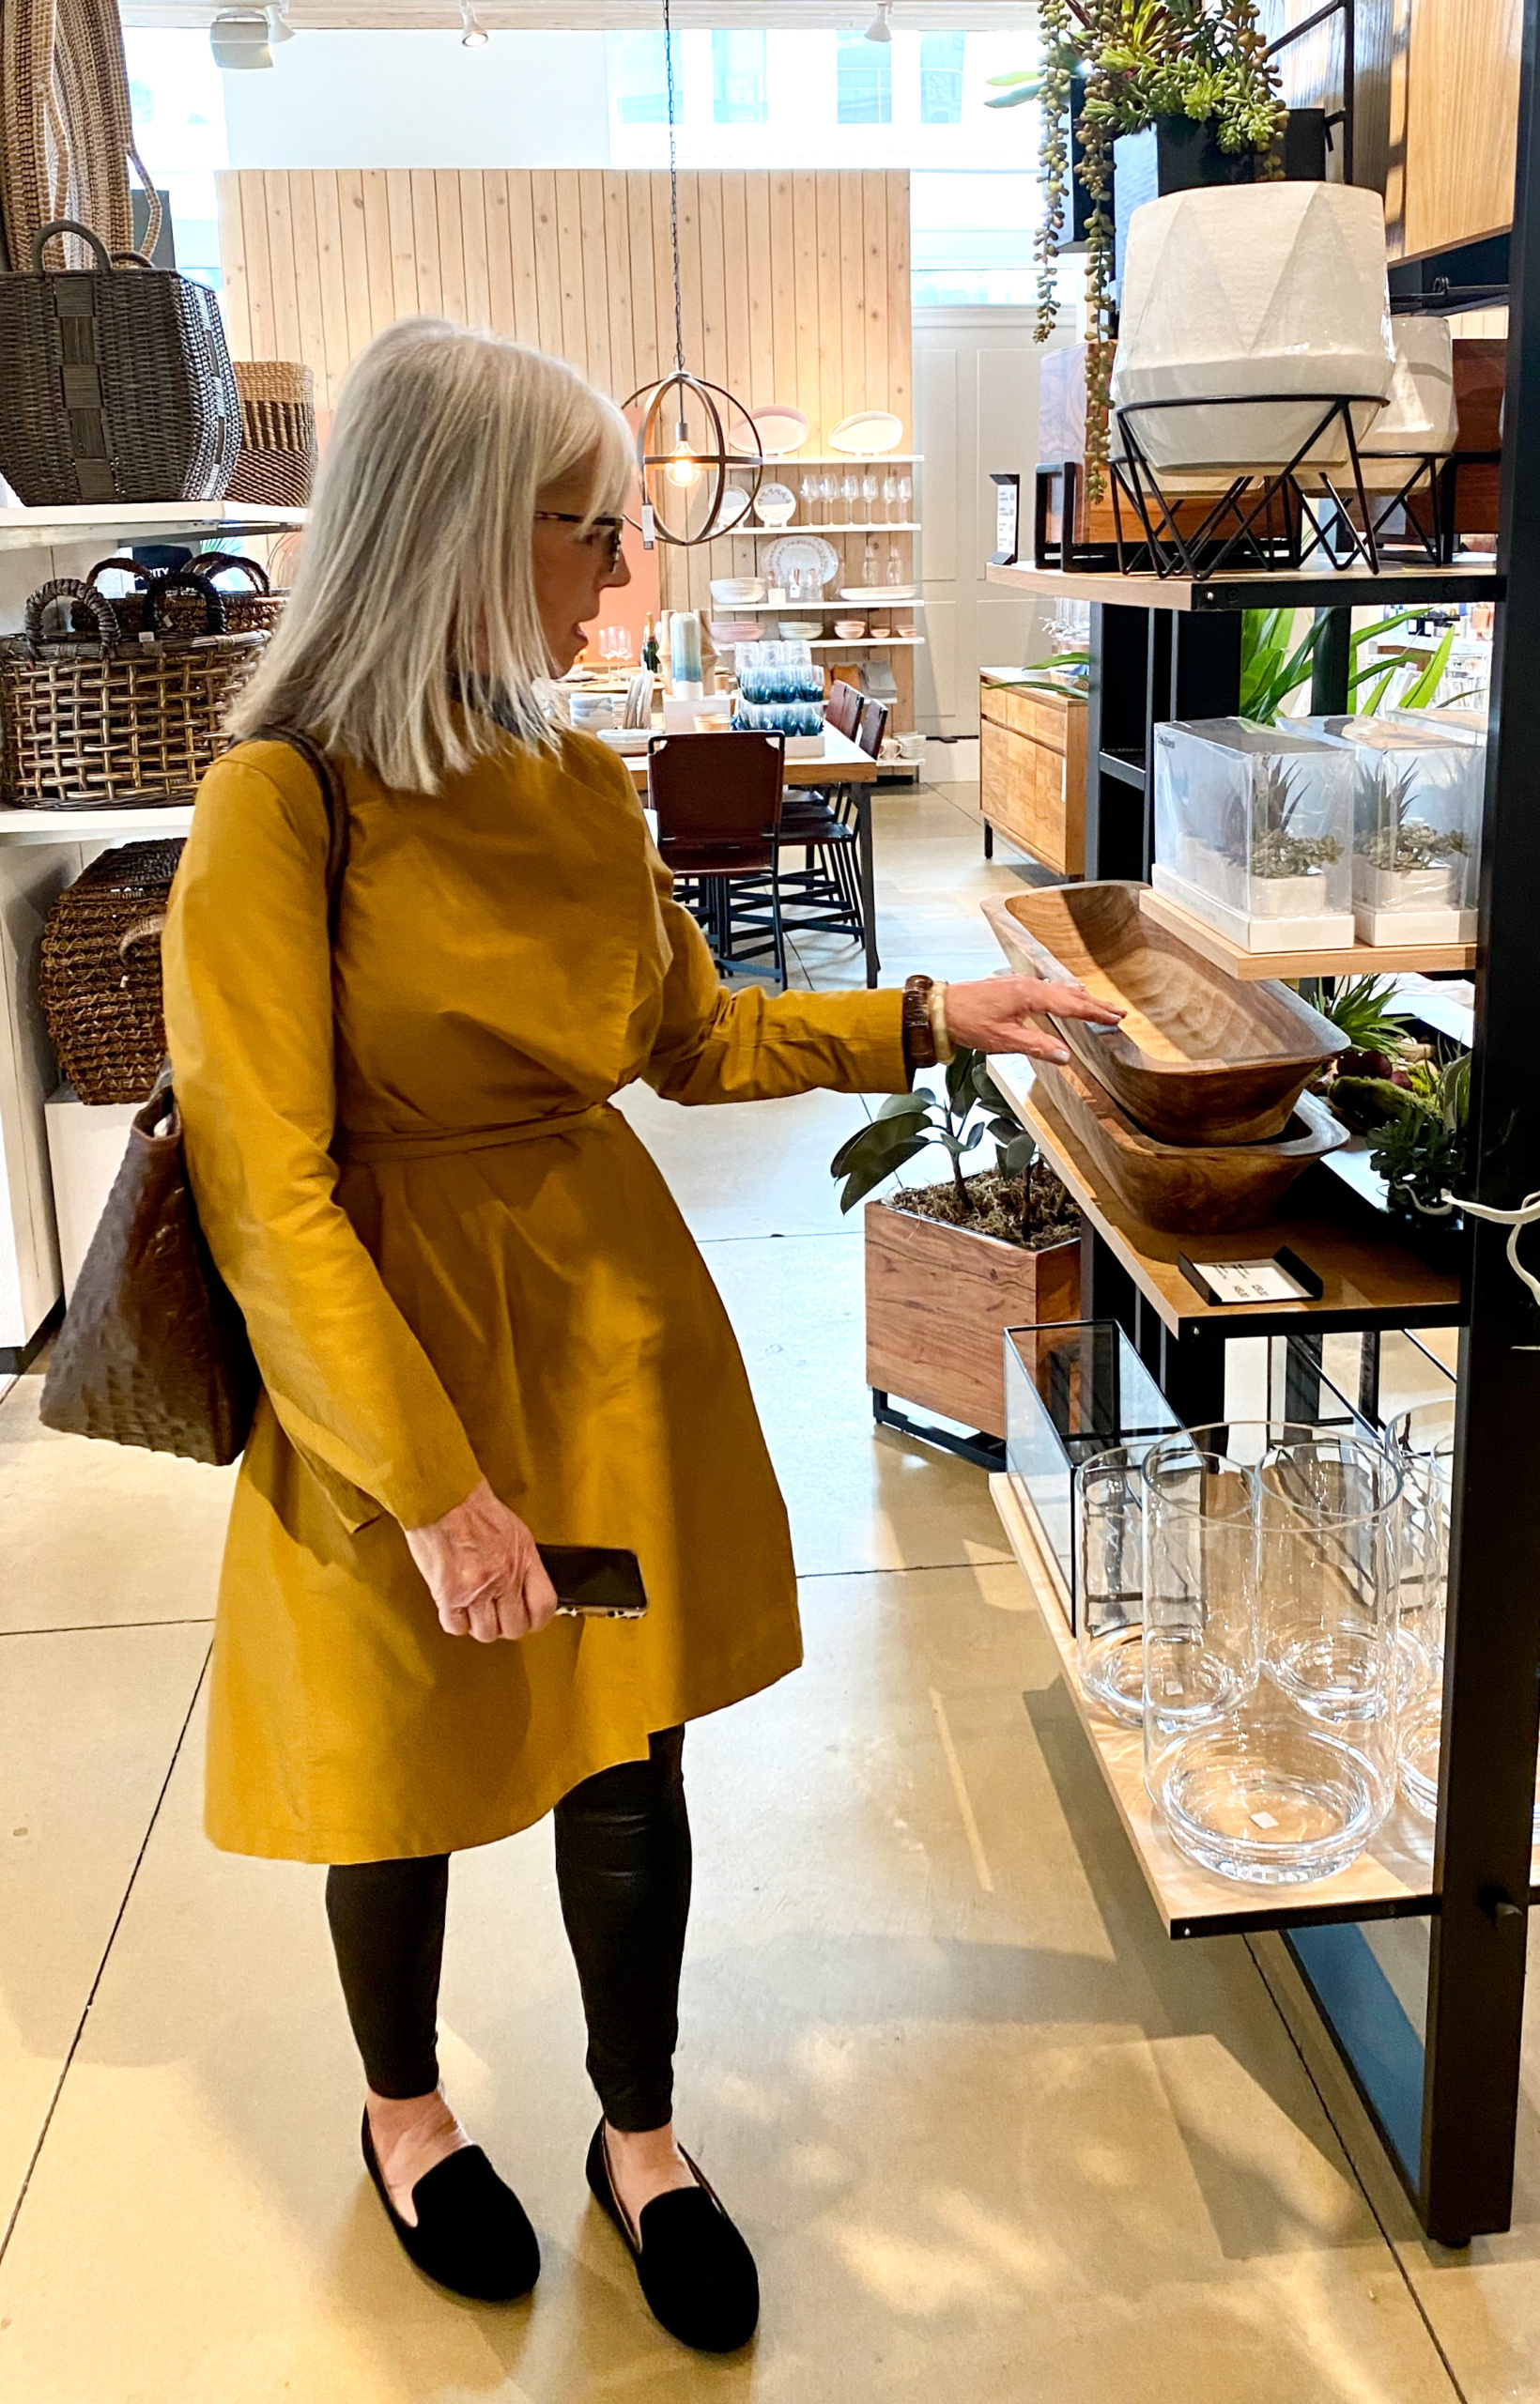 cindy hattersley in eileen fisher in crate and barrel